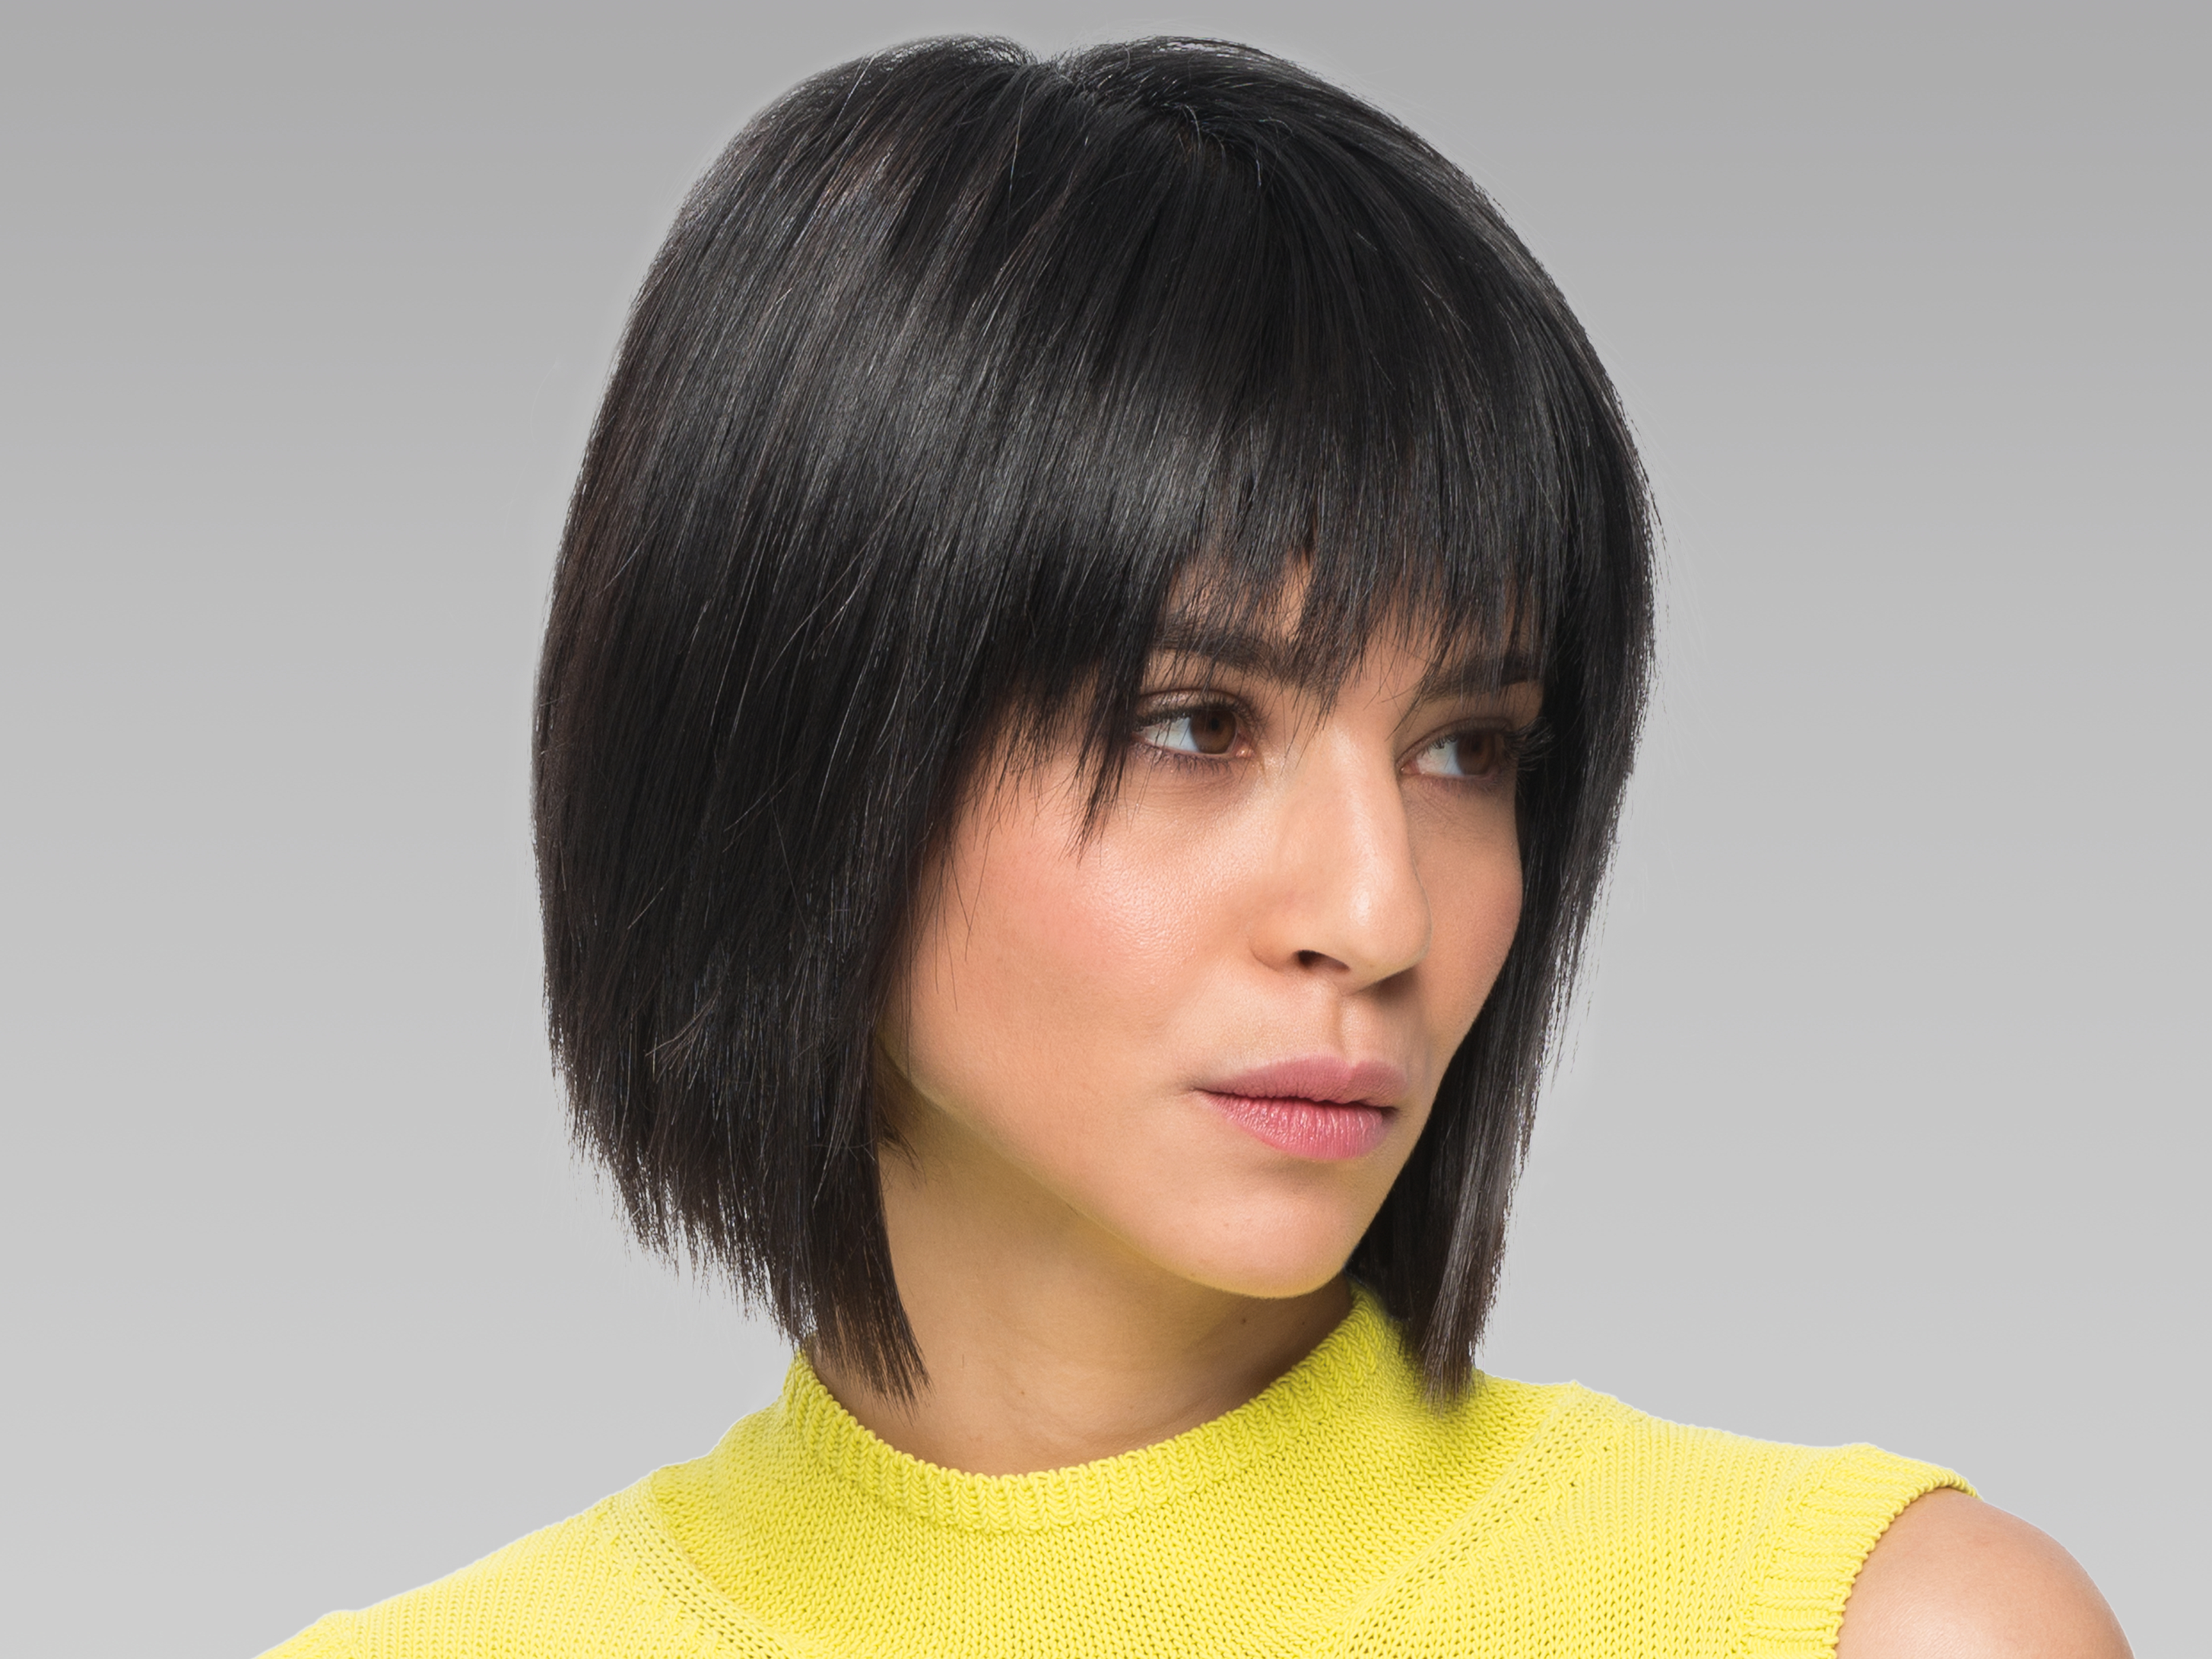 Women's Hairstyles | Supercuts Regarding Short Hairstyles For Black Women With Gray Hair (View 20 of 25)